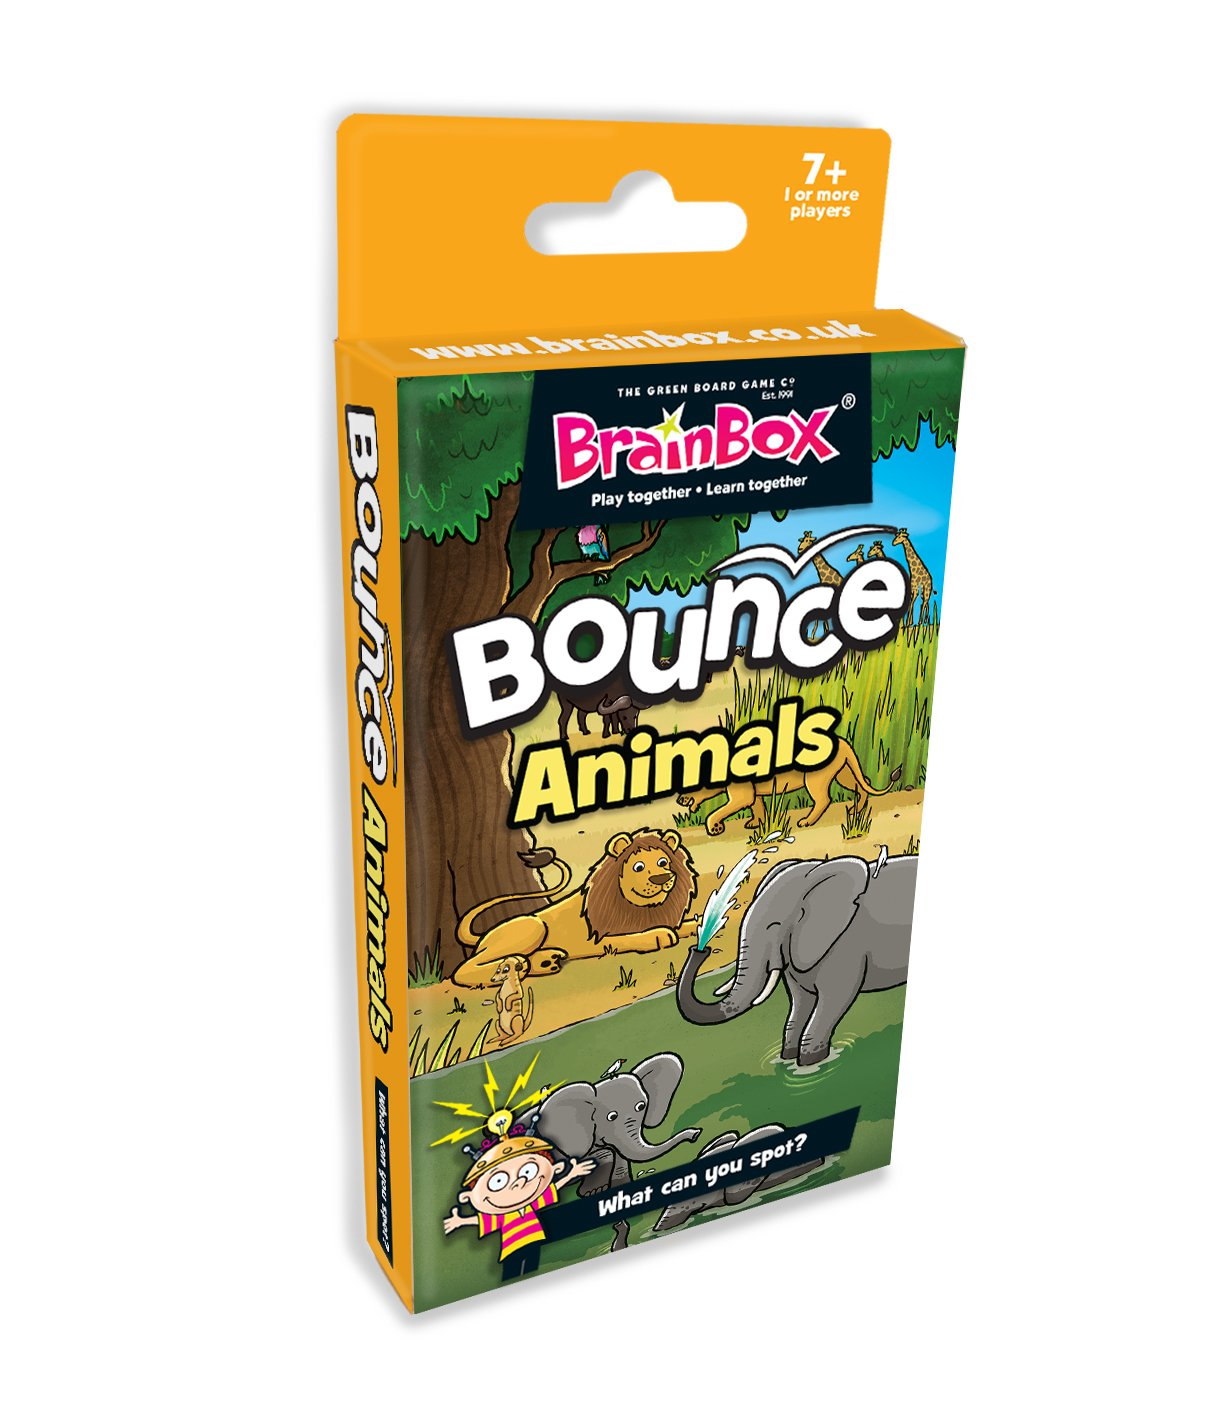 BrainBox Hinchable Juego de Cartas Animales: Amazon.es ...